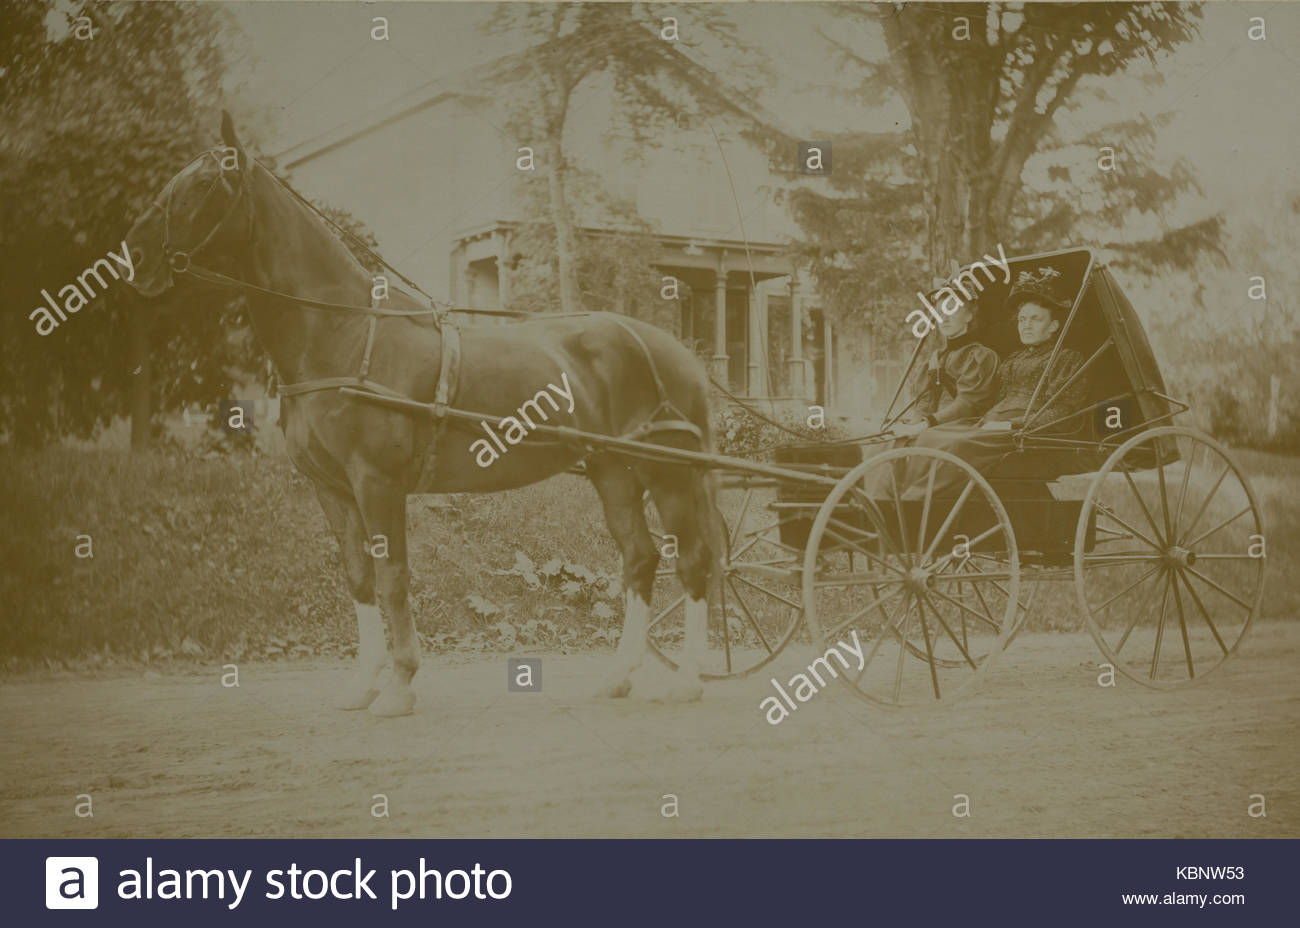 American archive monochrome photo of two ladies wearing hats sitting in a horse carriage on a dirt lane outside - Stock Image